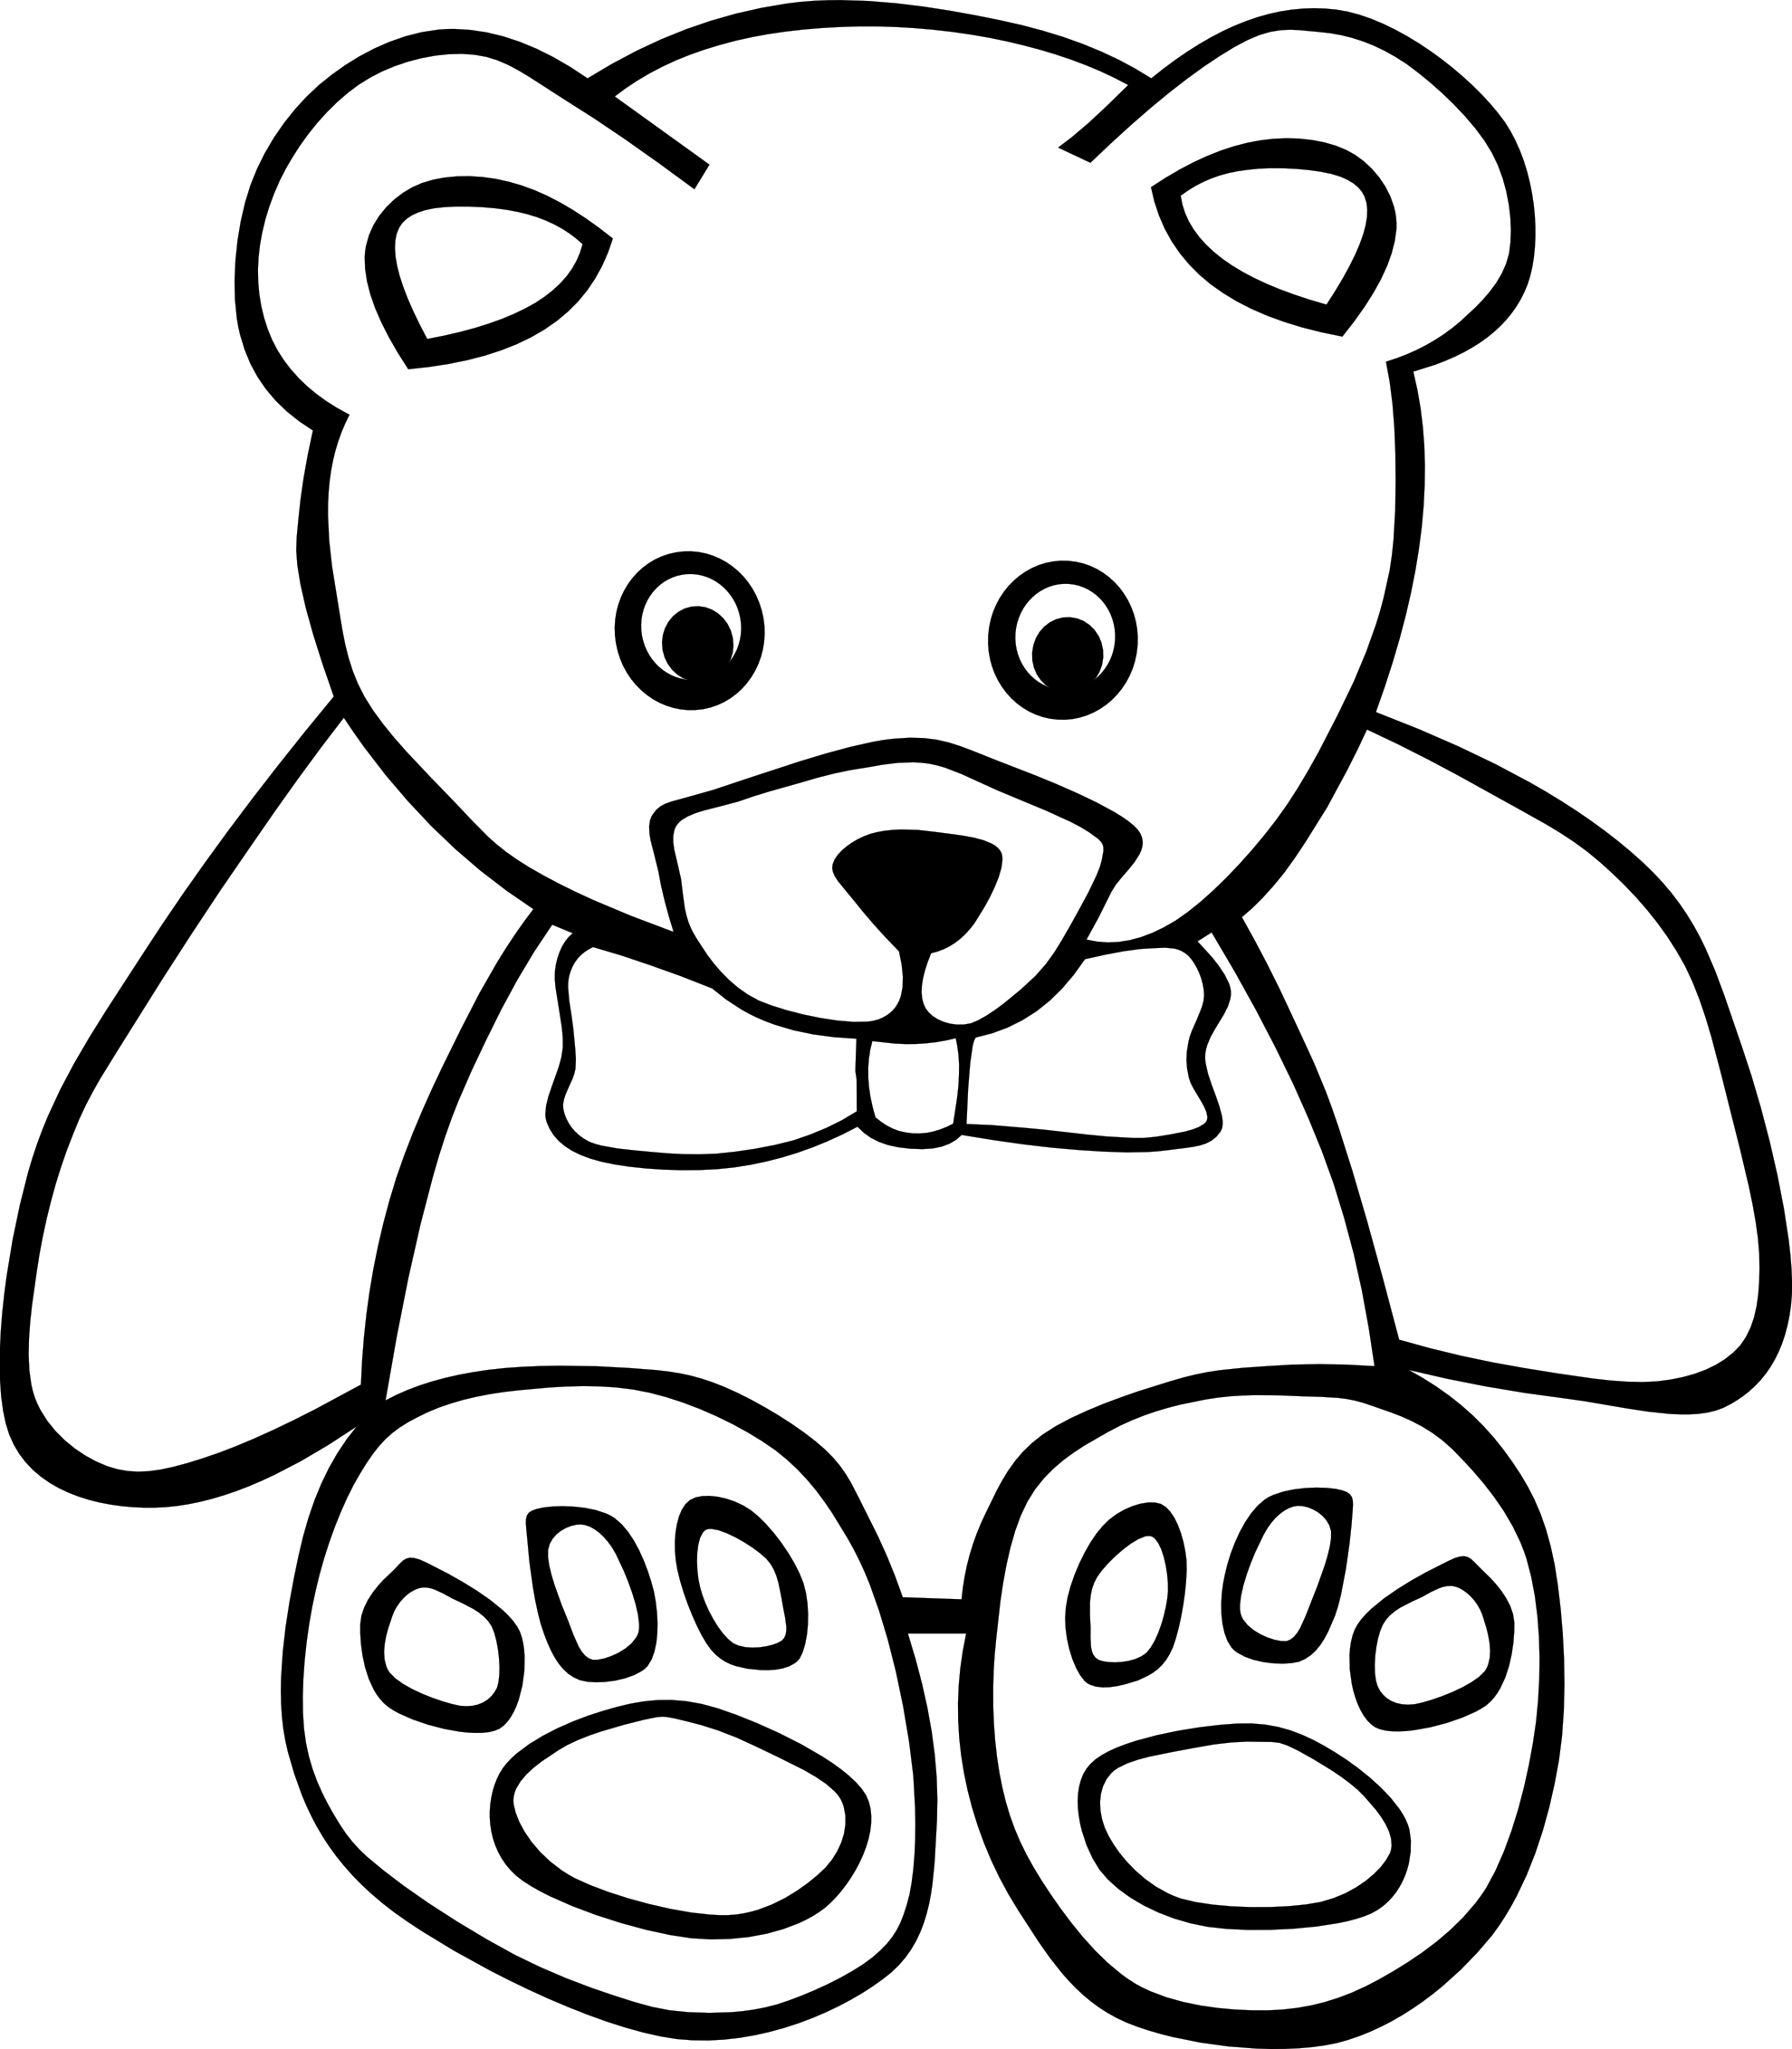 png download Valentine drawing cute animal. Bear at getdrawings com